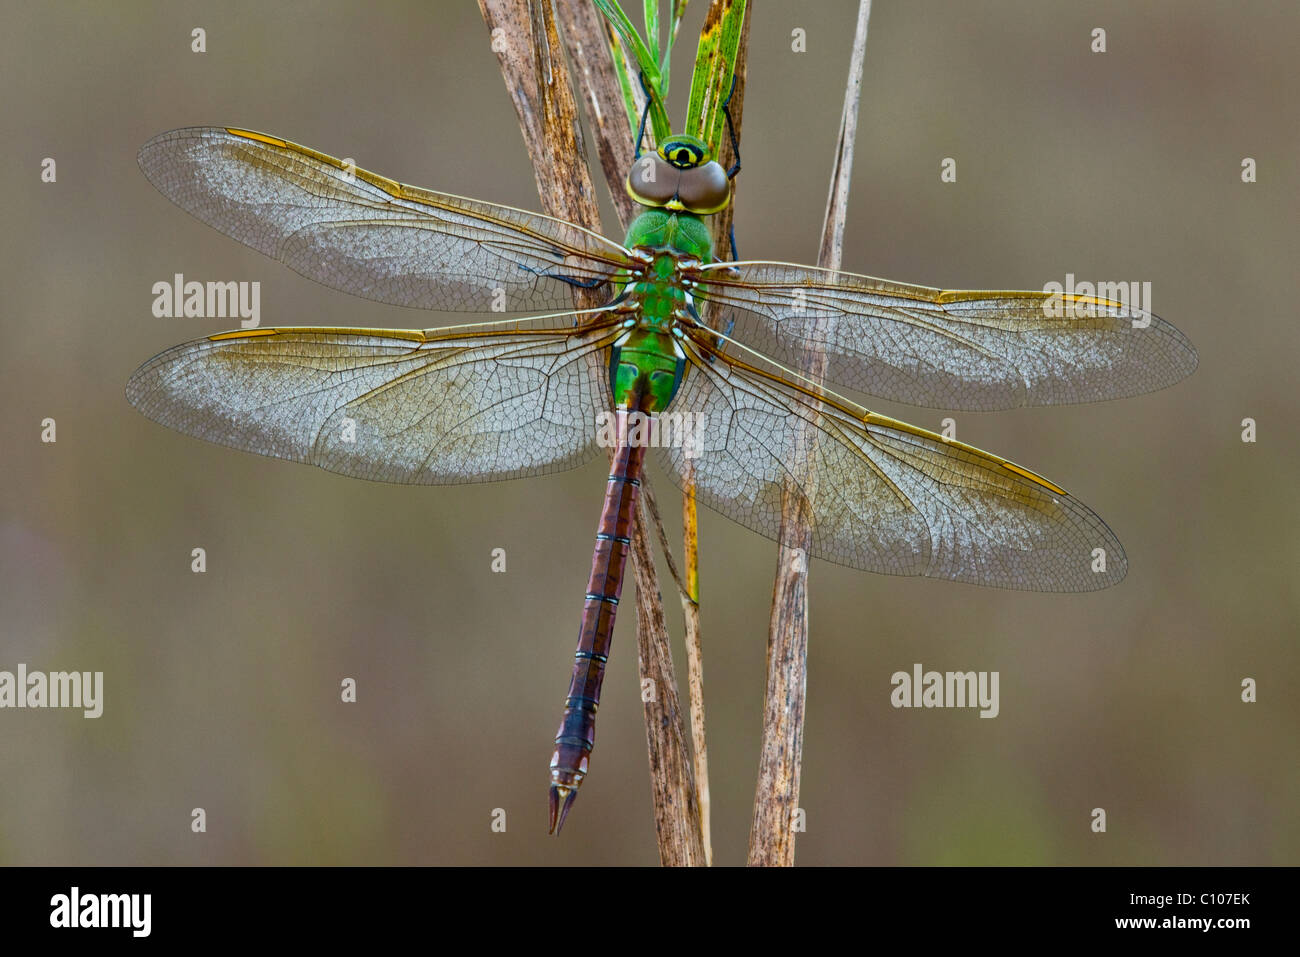 Common Green Darner Dragonfly Anax junius Eastern North America - Stock Image